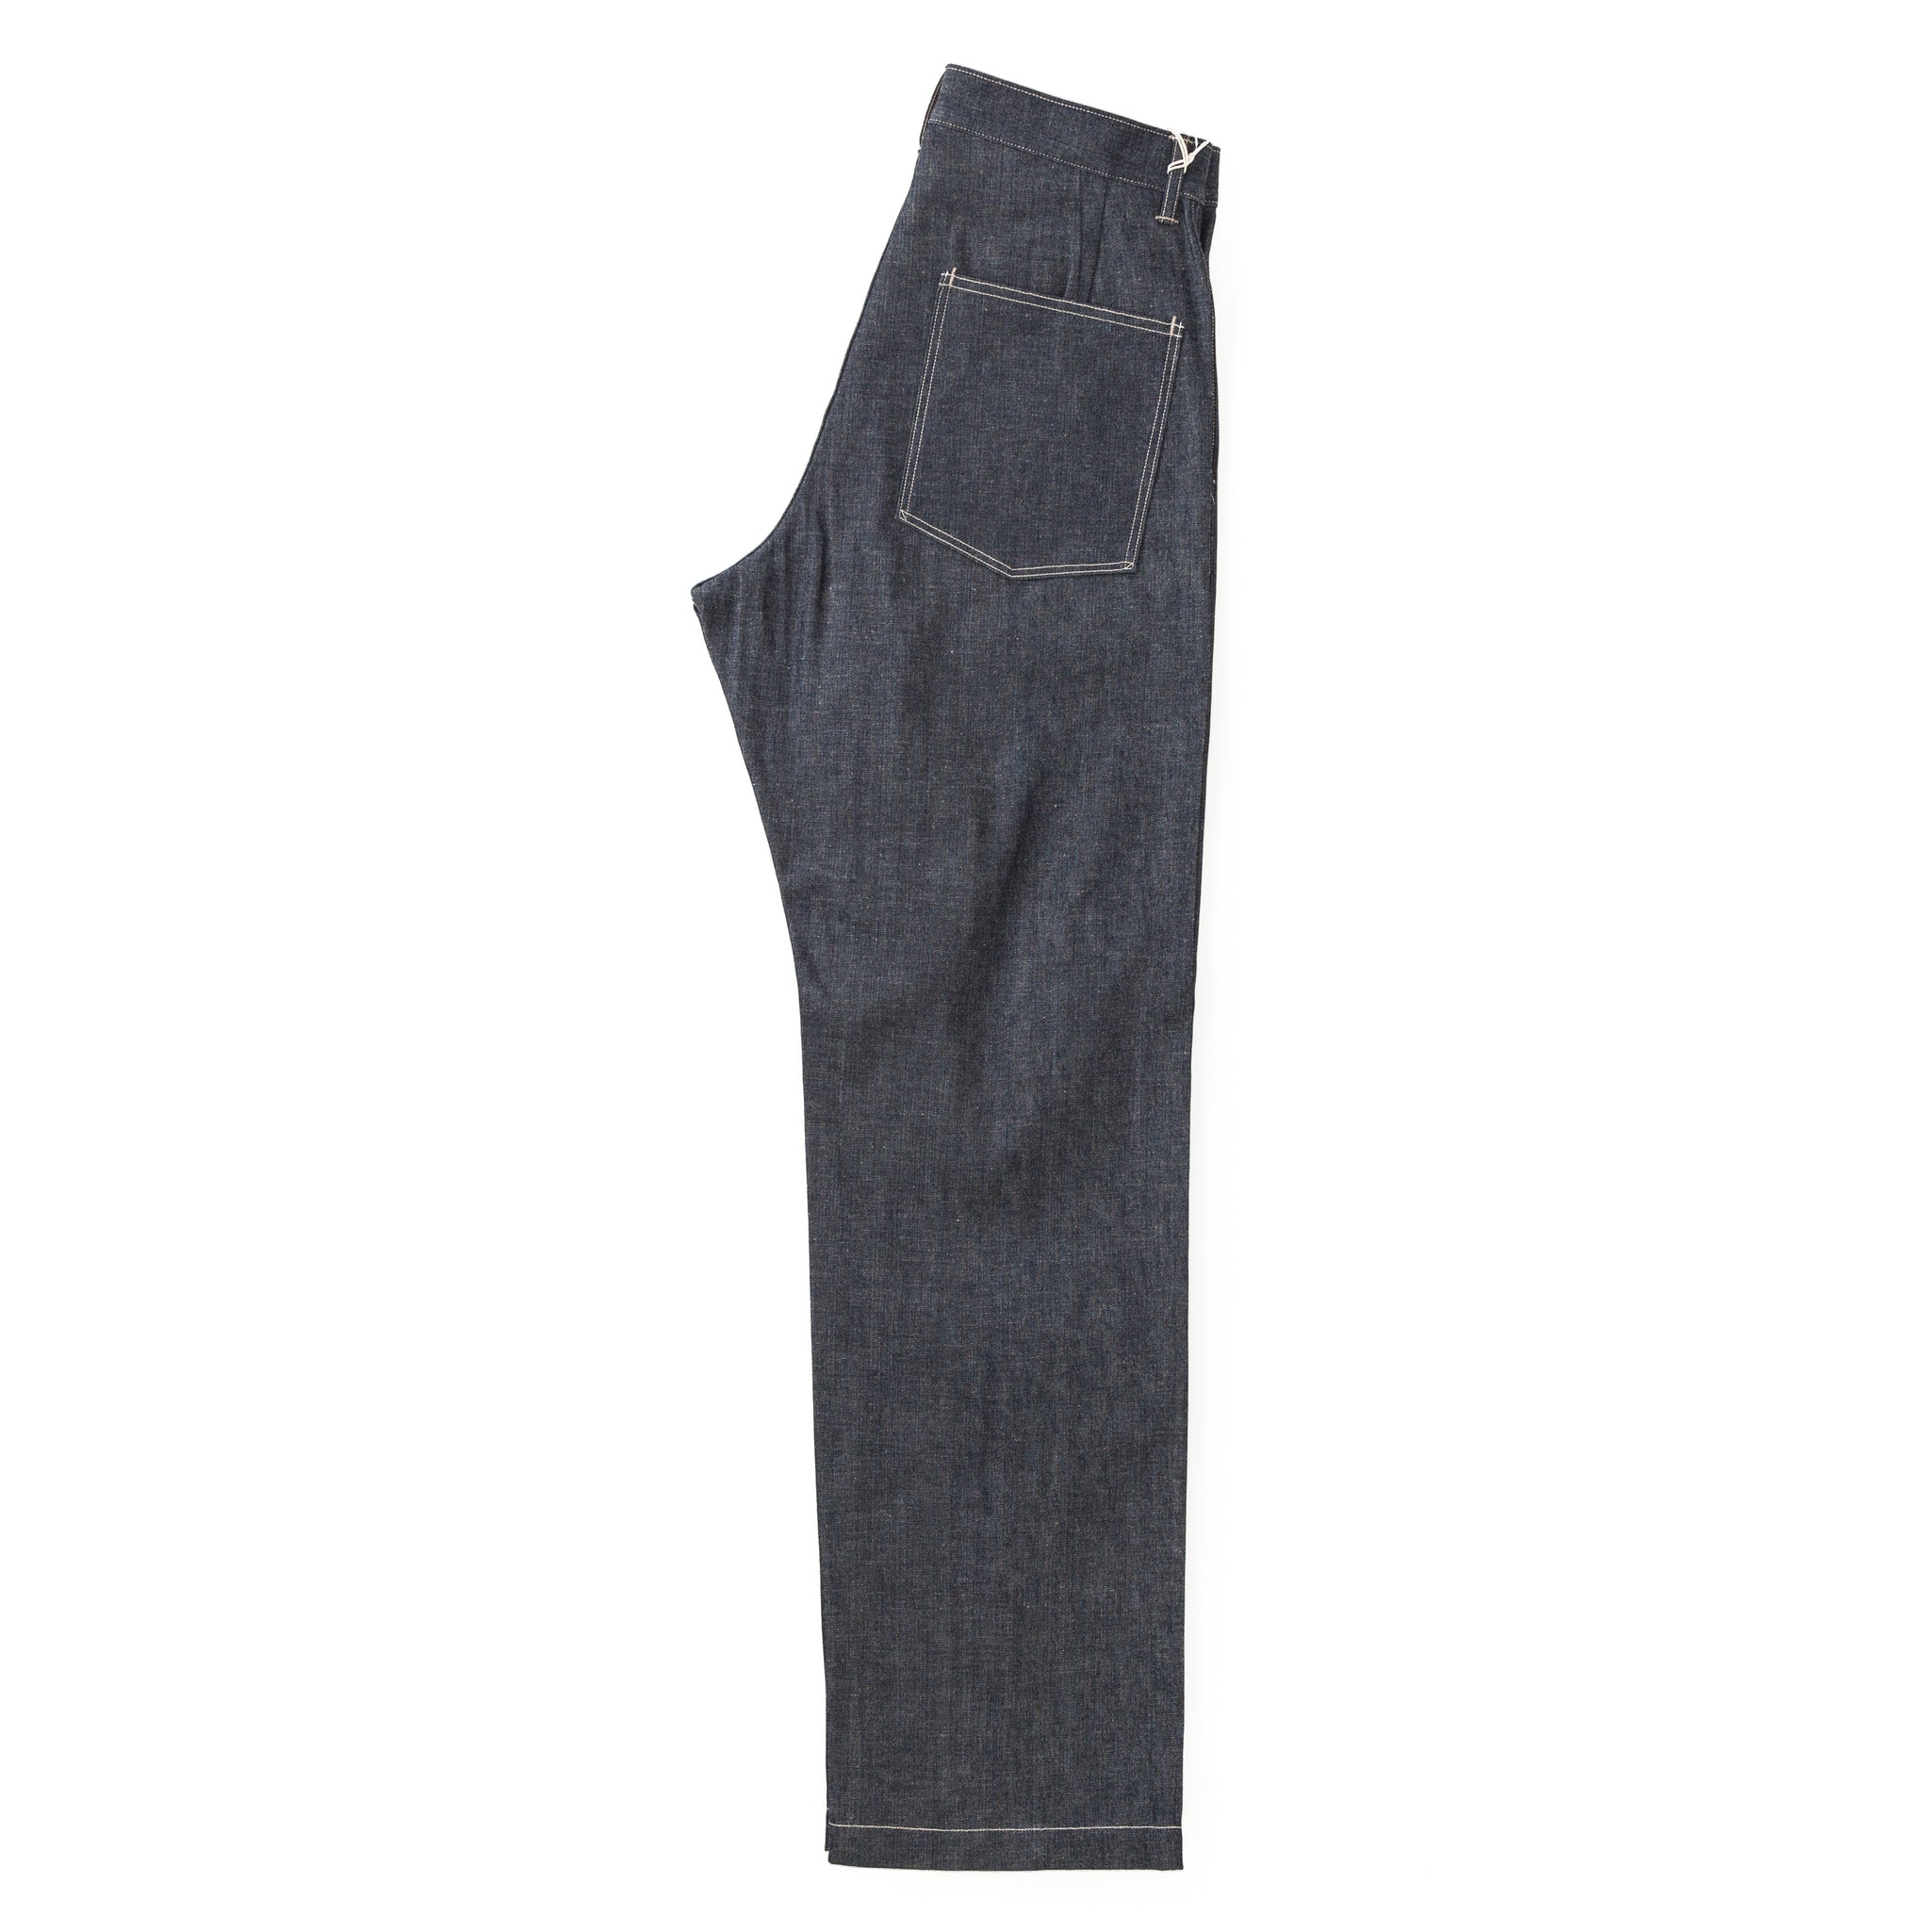 Mil.Denim Trousers